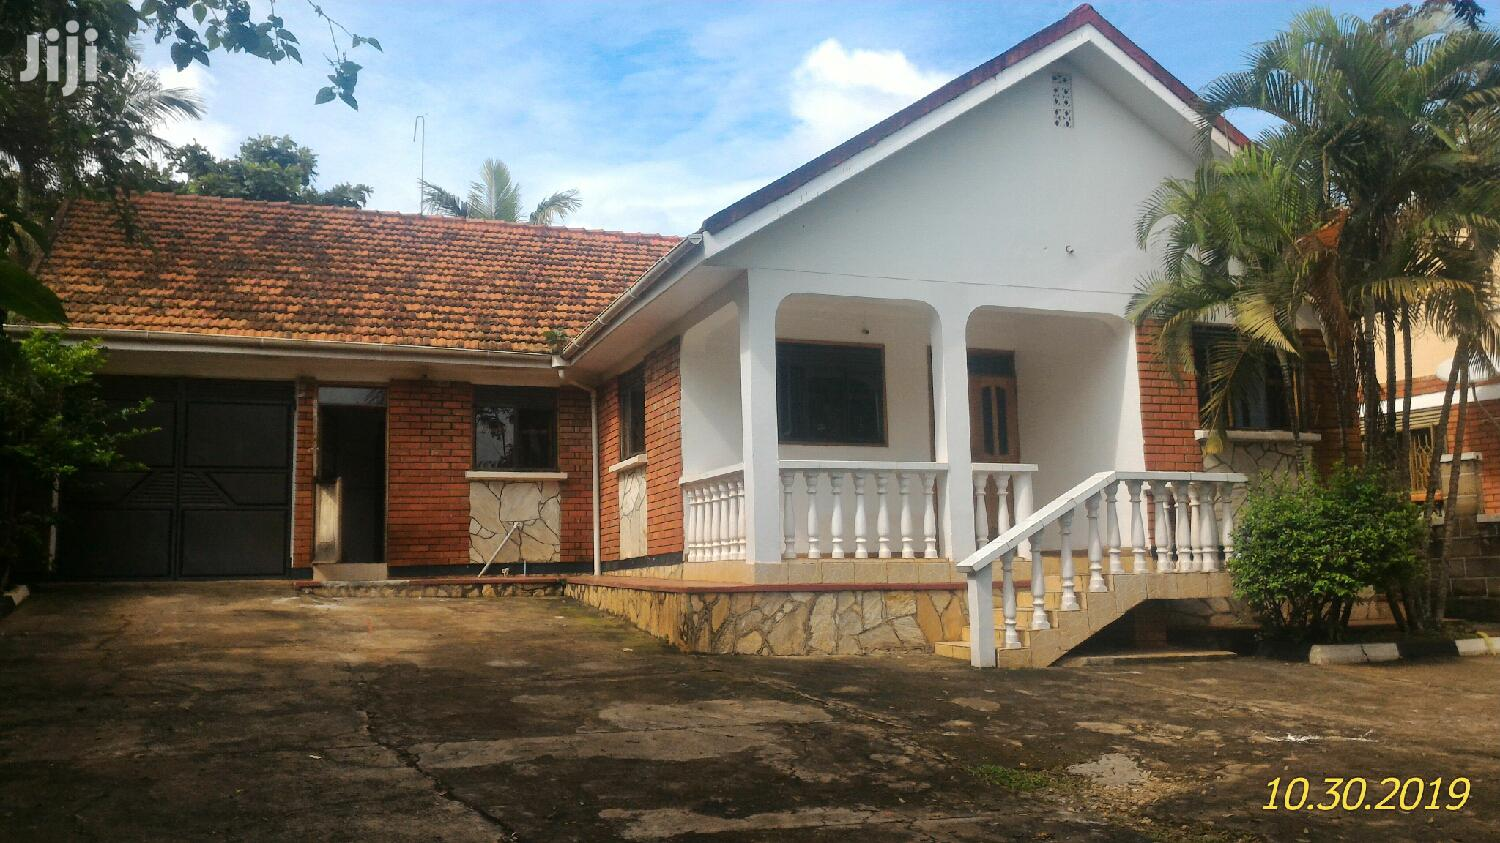 Bungalow for Rent in Port Bell -Luzira | Houses & Apartments For Rent for sale in Kampala, Central Region, Uganda